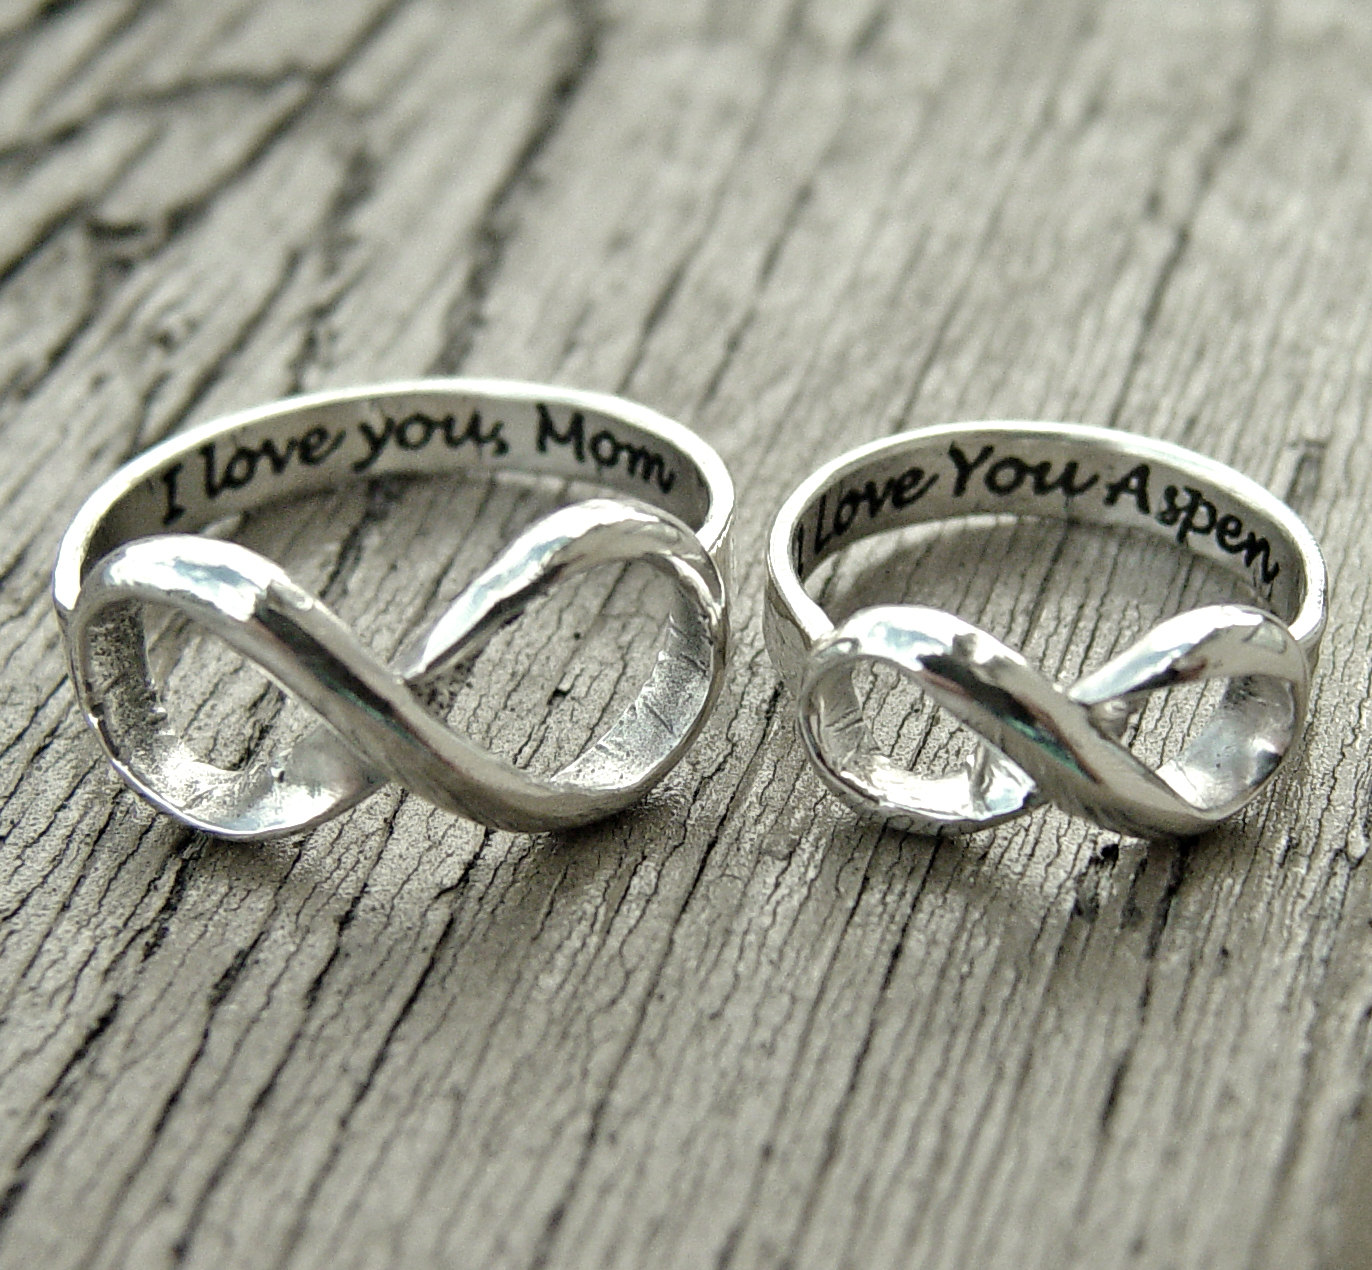 Rings With Quotes On Them Quotesgram: Engraved Rings With Quotes. QuotesGram